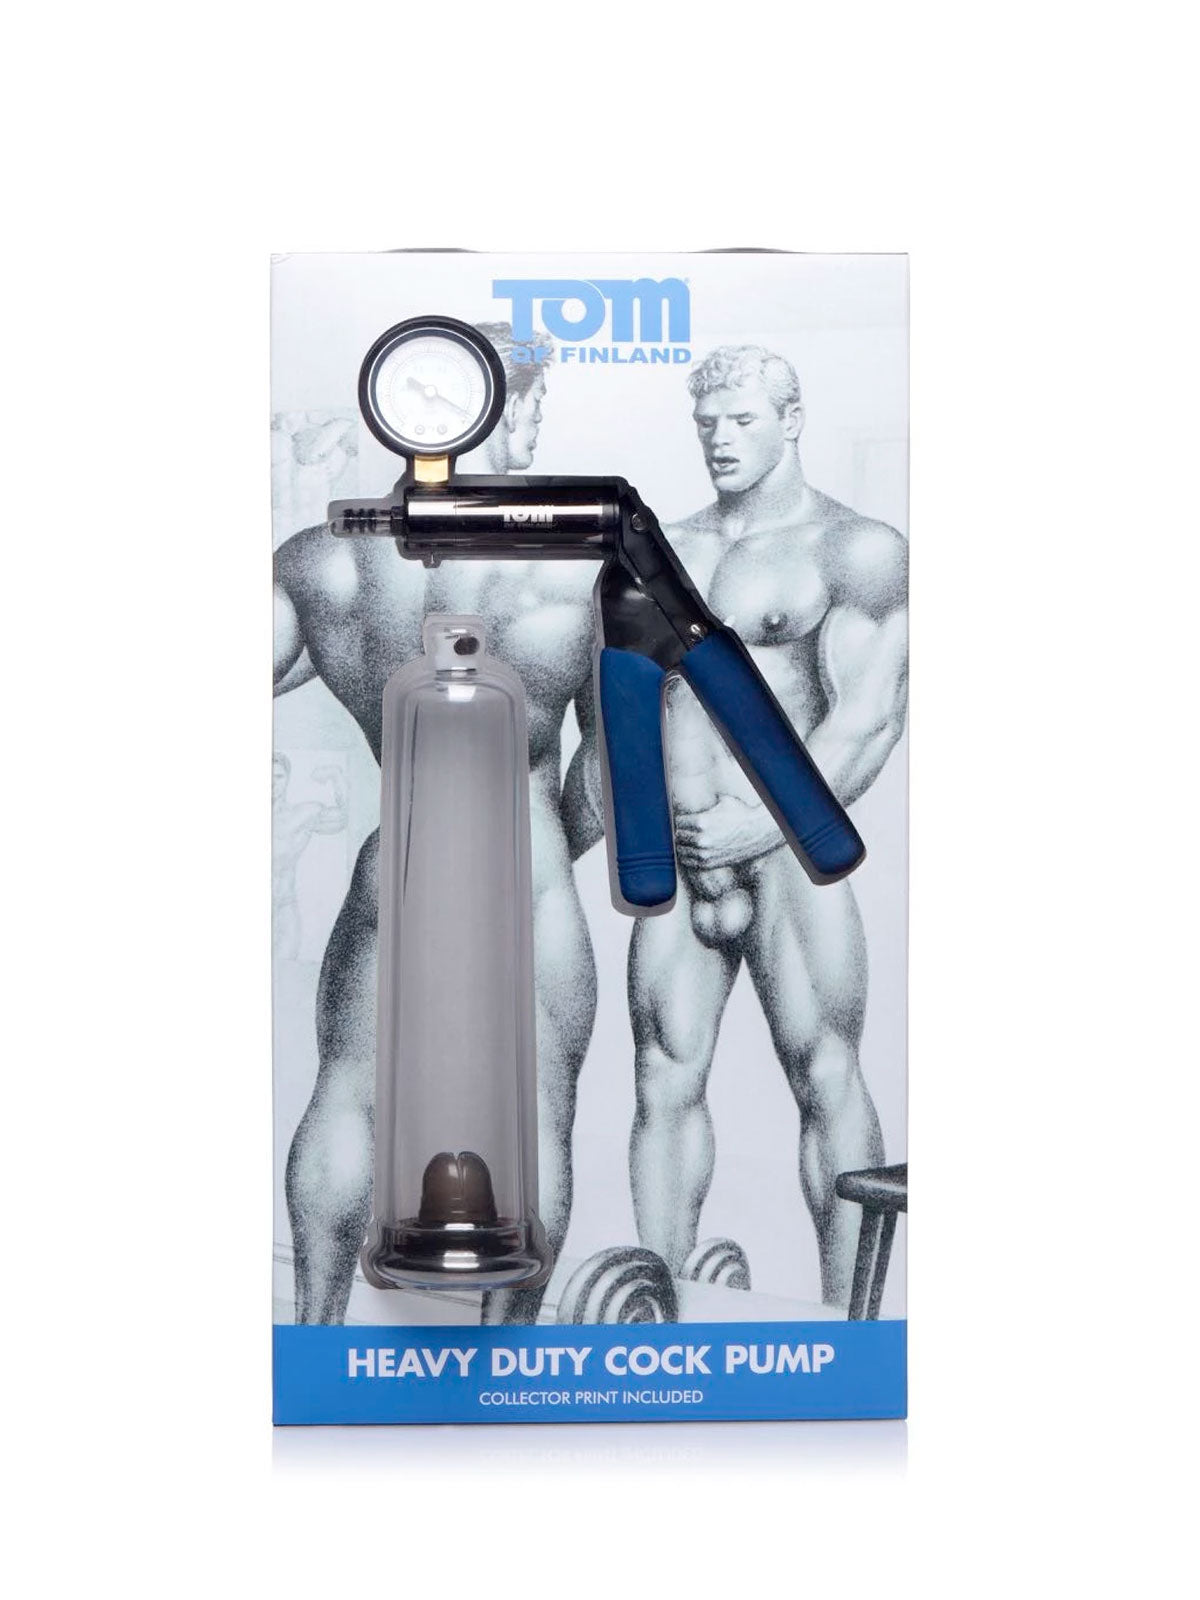 Heavy Duty Penis Pump Packaging